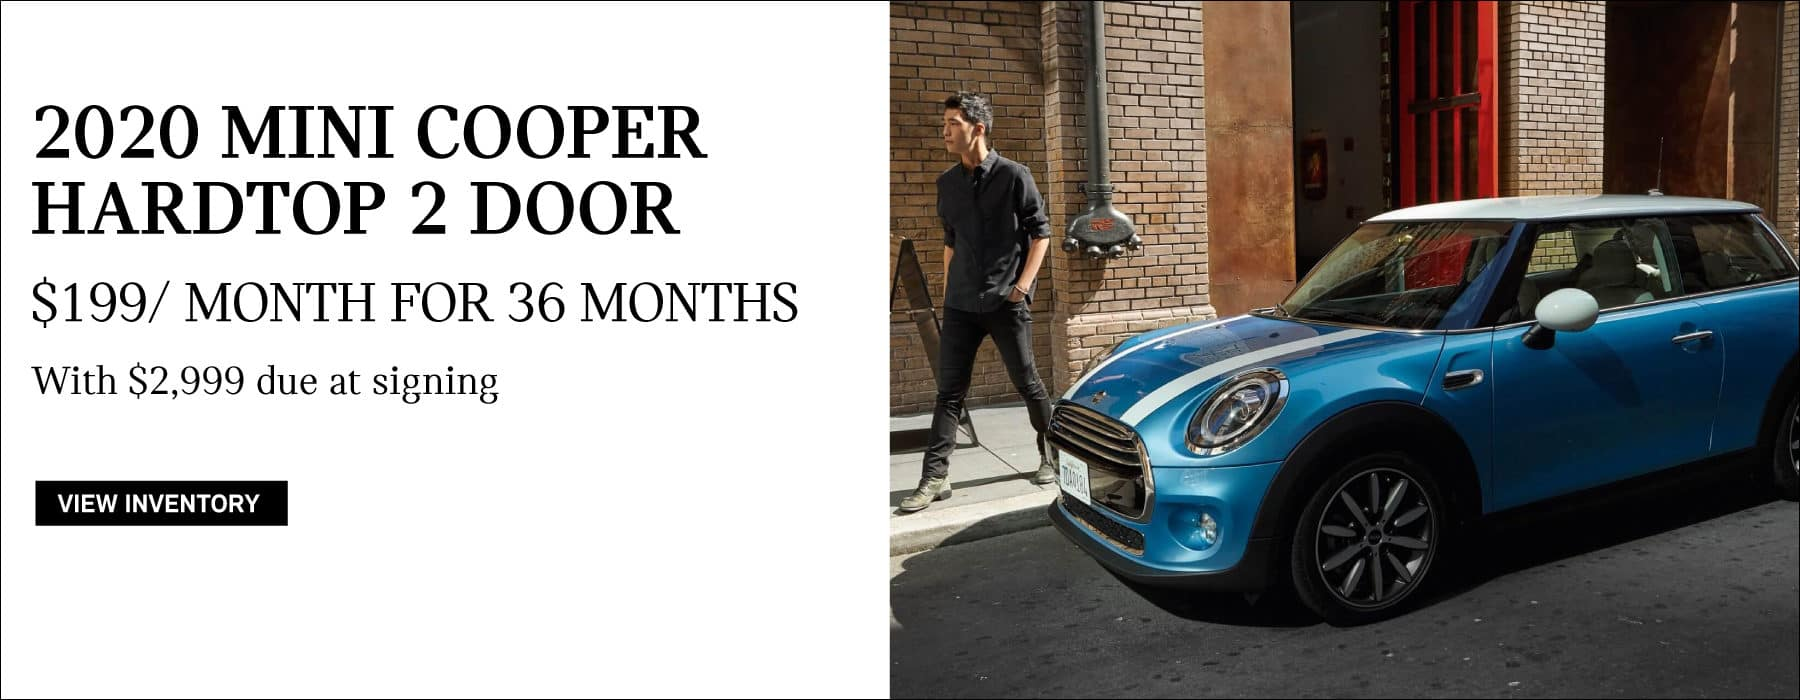 $199/month for 36 months. MINI COOPER S HARDTOP 2 DOOR. $2999 due at signing.